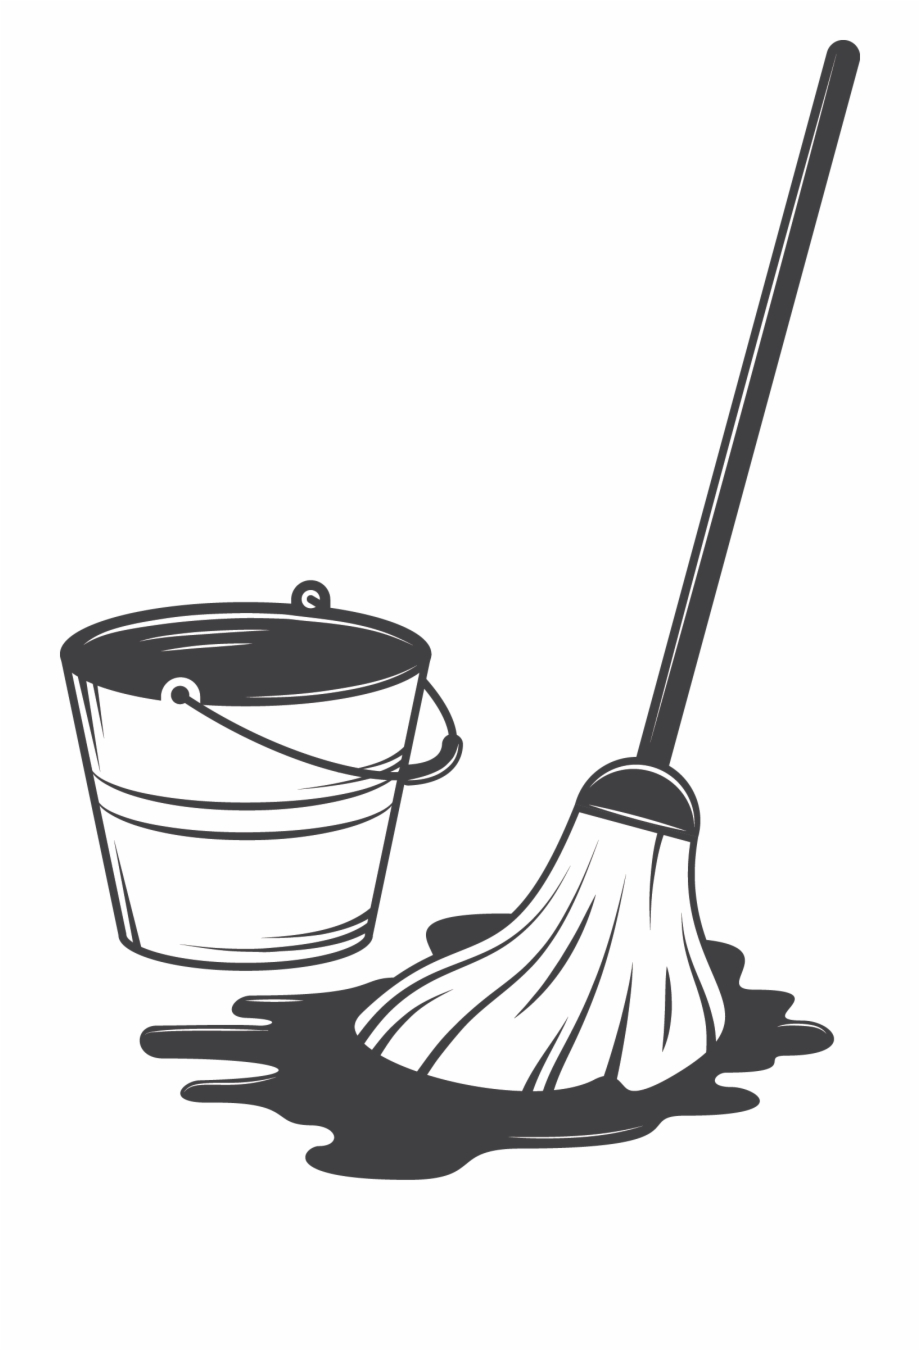 Cleaning illustration service drawing. Clean clipart housekeeping tool